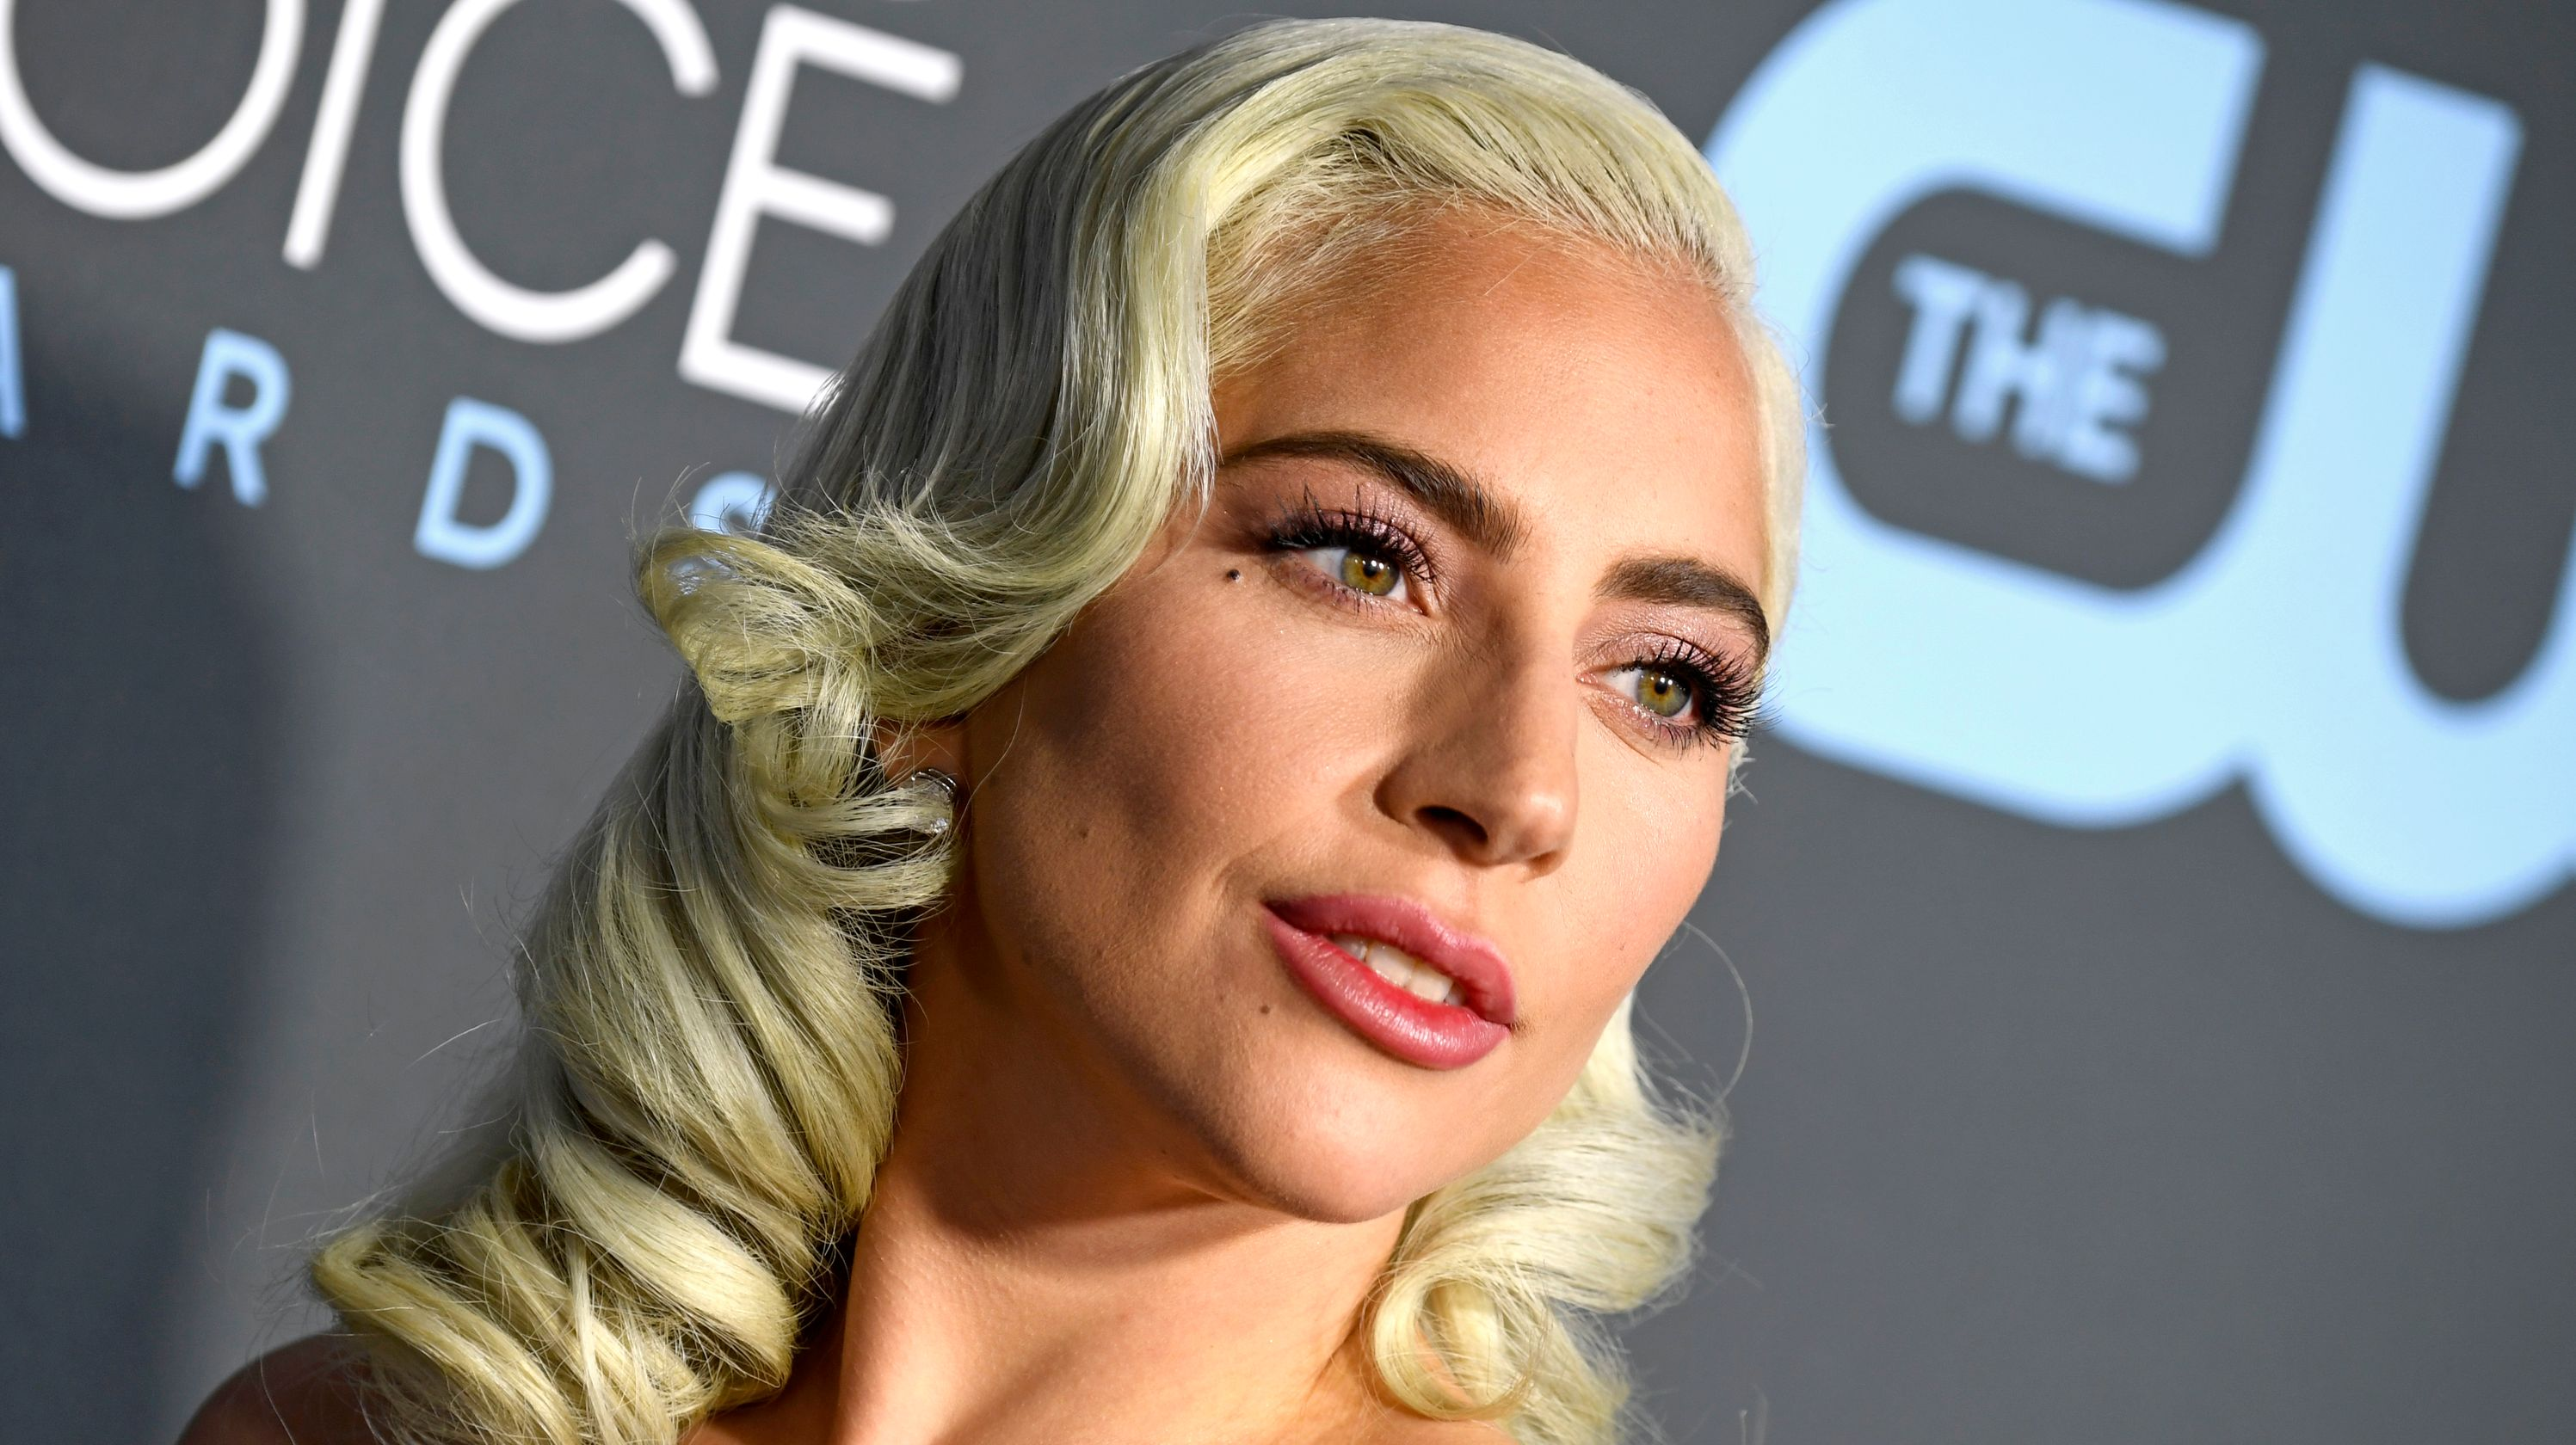 Lady Gaga slams Mike Pence as the 'worst representation of what it means to be a Christian'